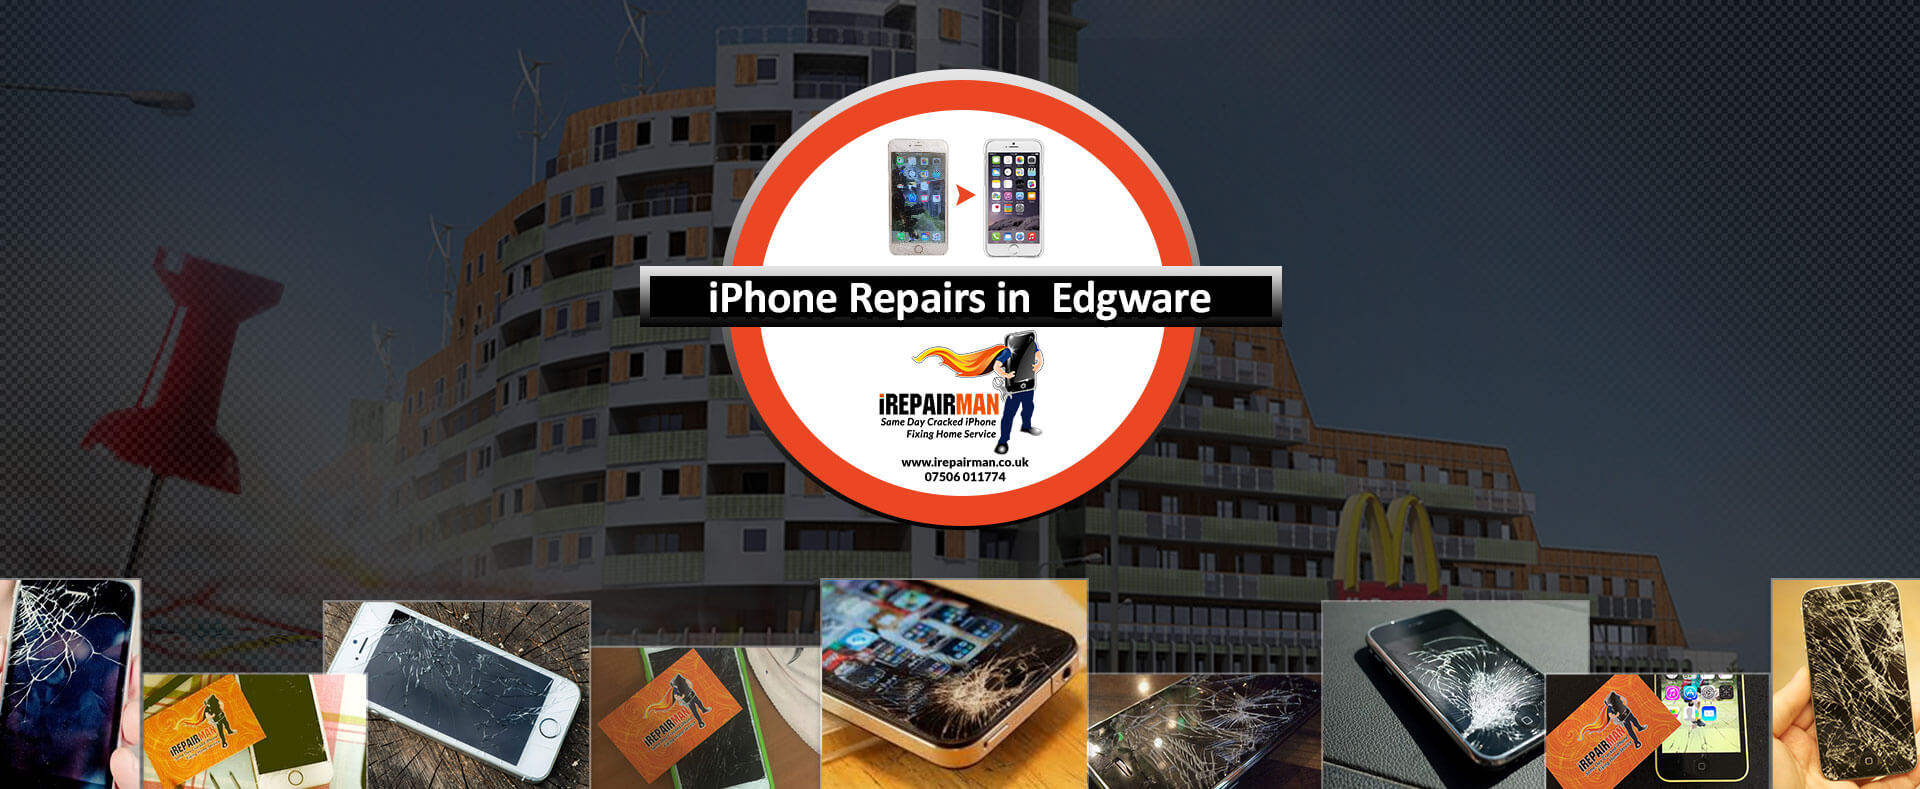 iPhone Repairs in Edgware